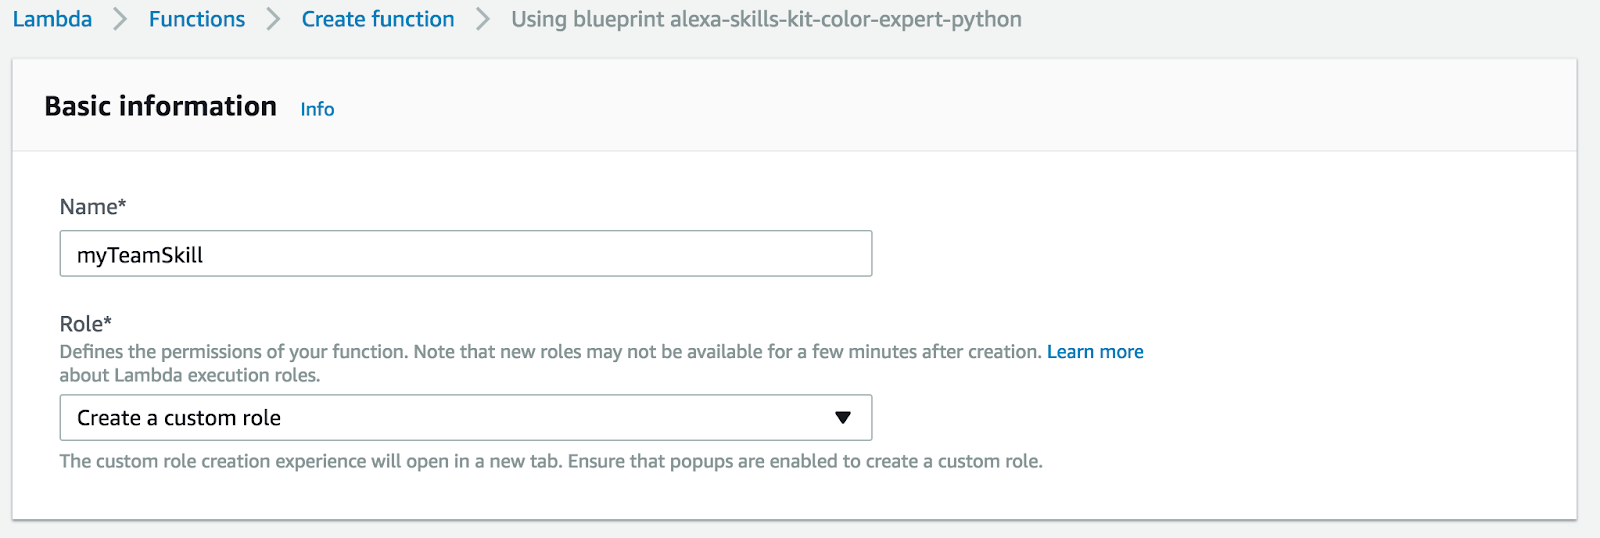 How to Develop an Alexa Skill in Under 10 Minutes with Python